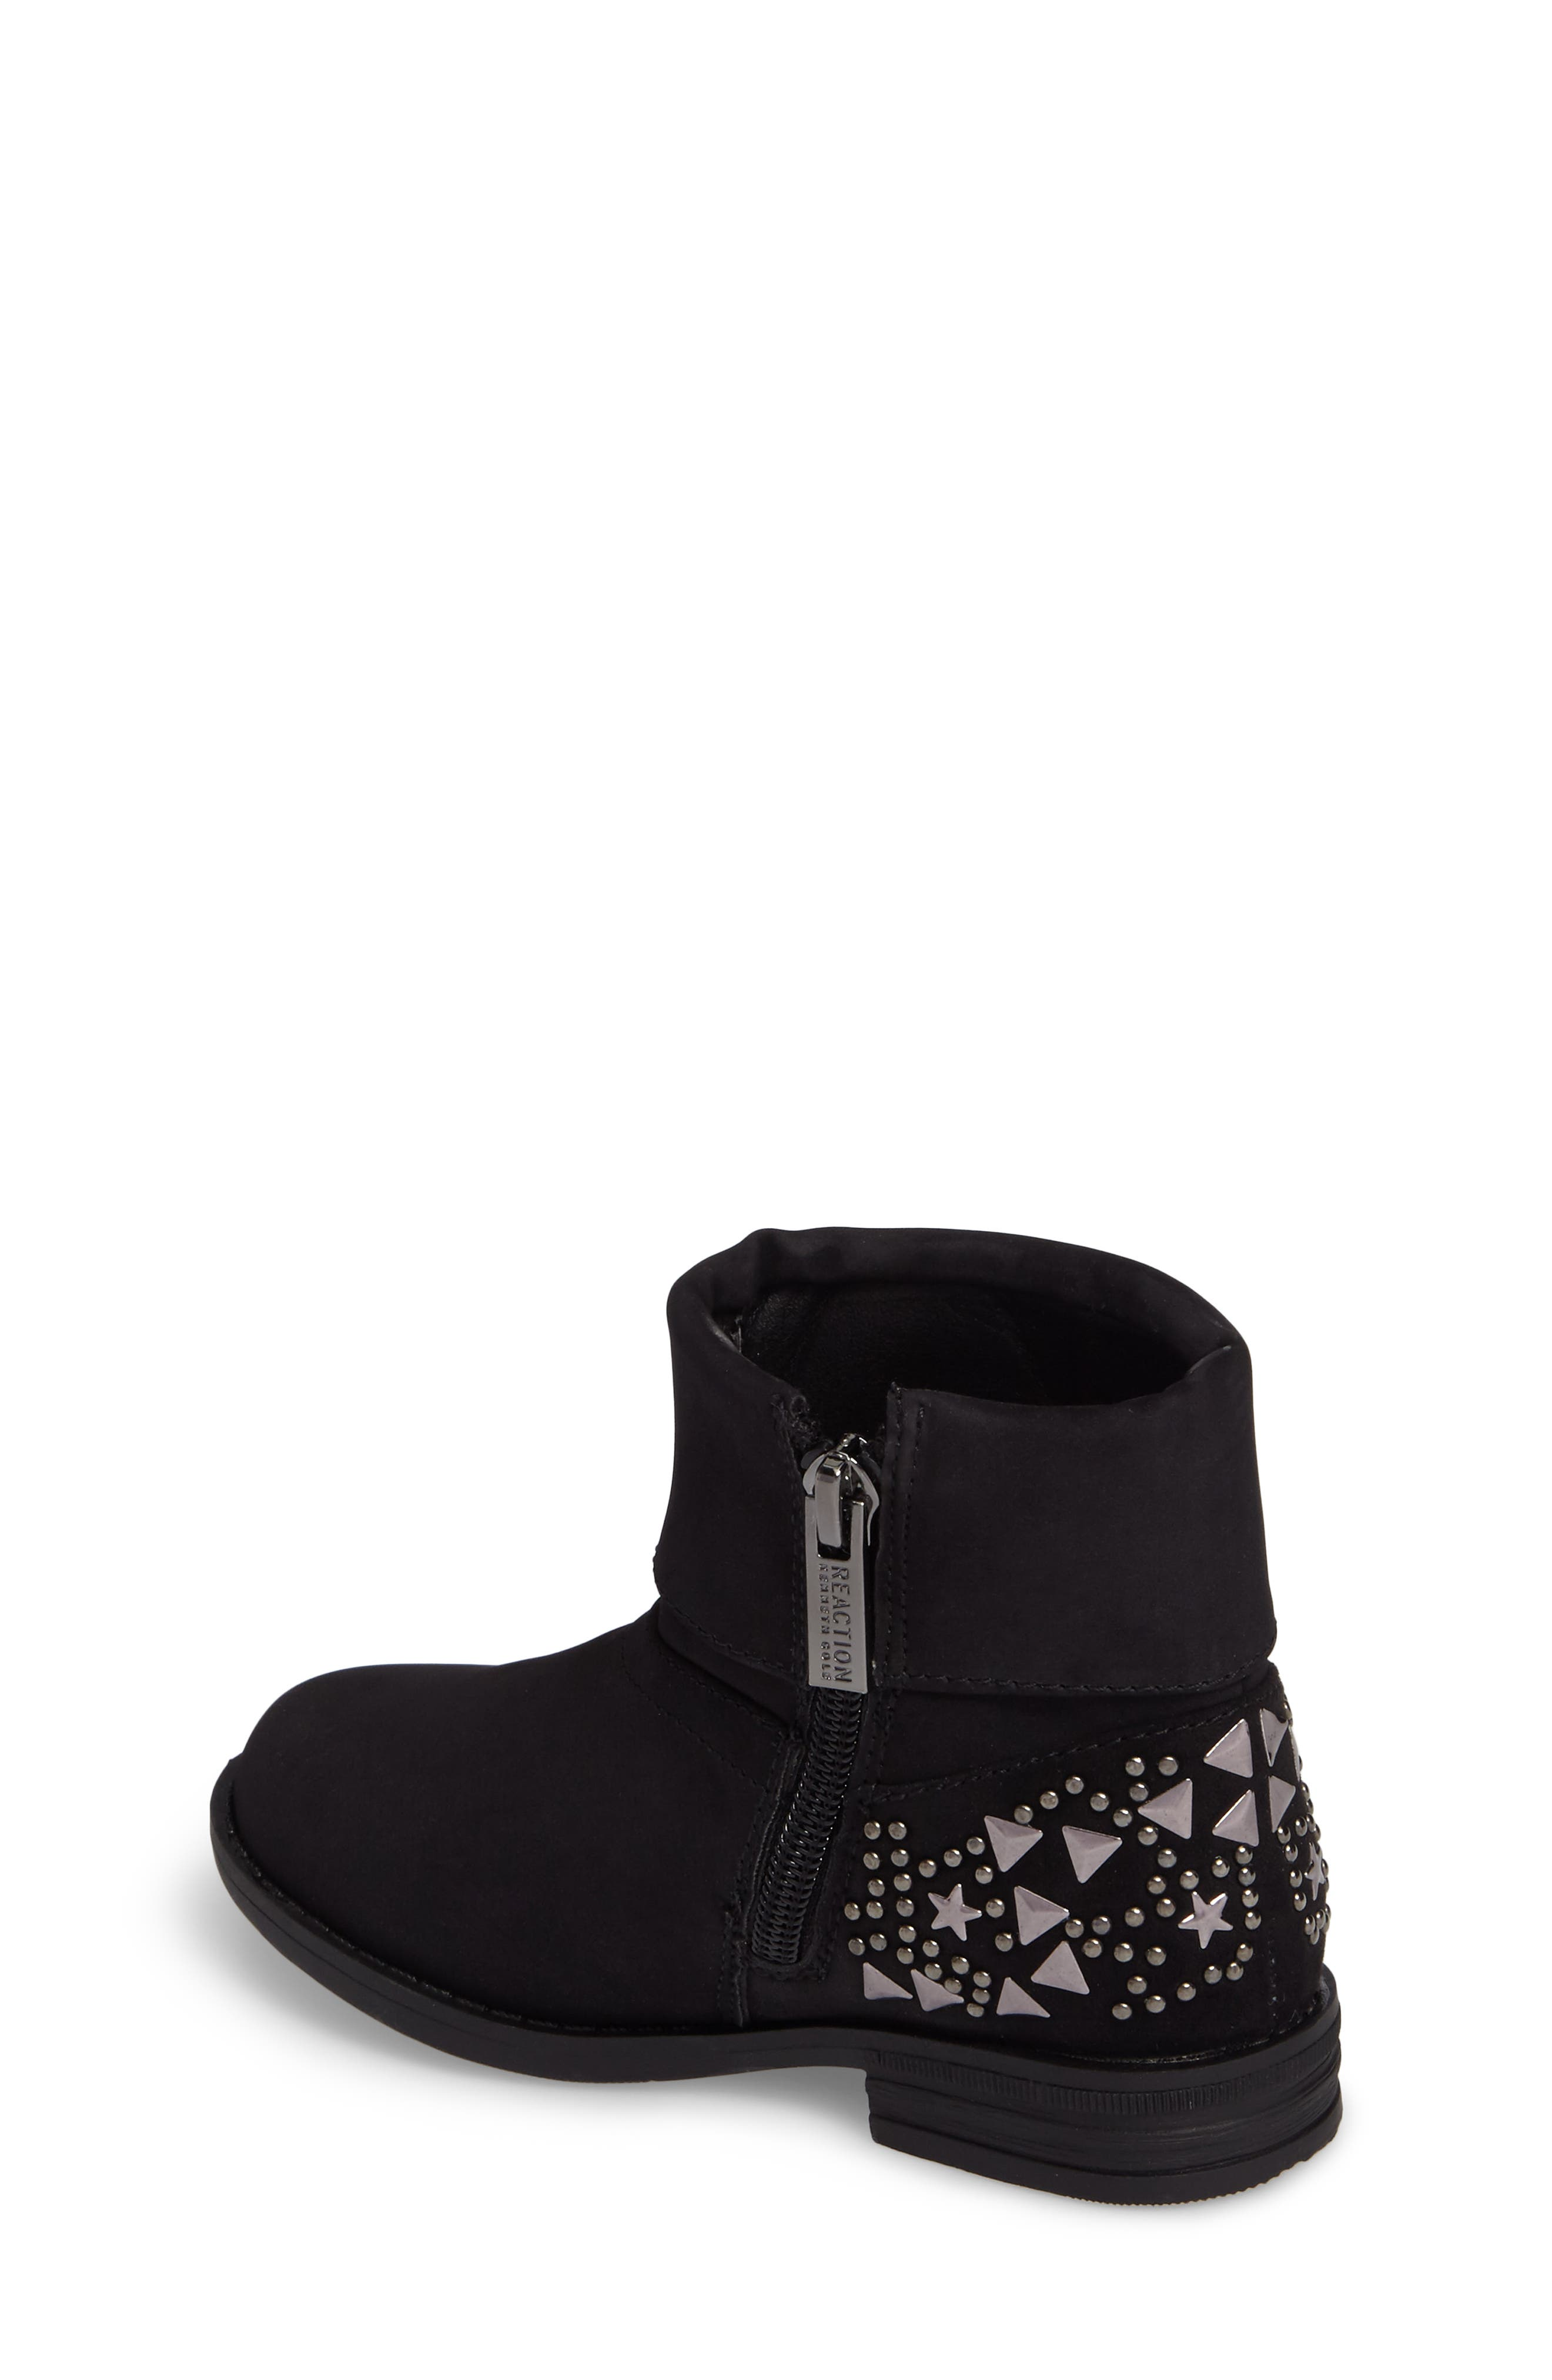 Wild Star Studded Bootie,                             Alternate thumbnail 2, color,                             001